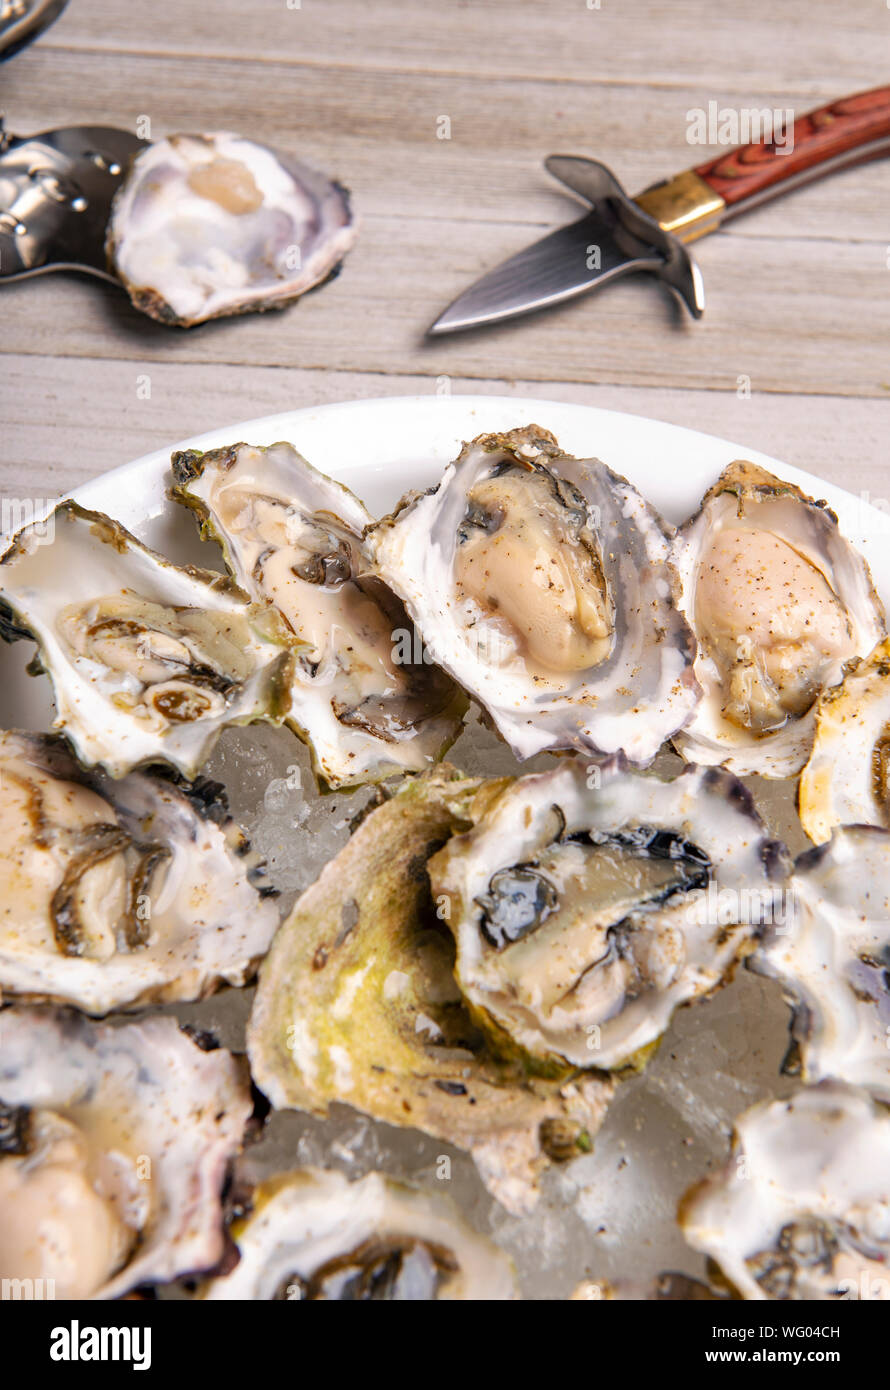 Detail of a plate with fresh shucked oysters from the Canadian west coast over wood background Stock Photo